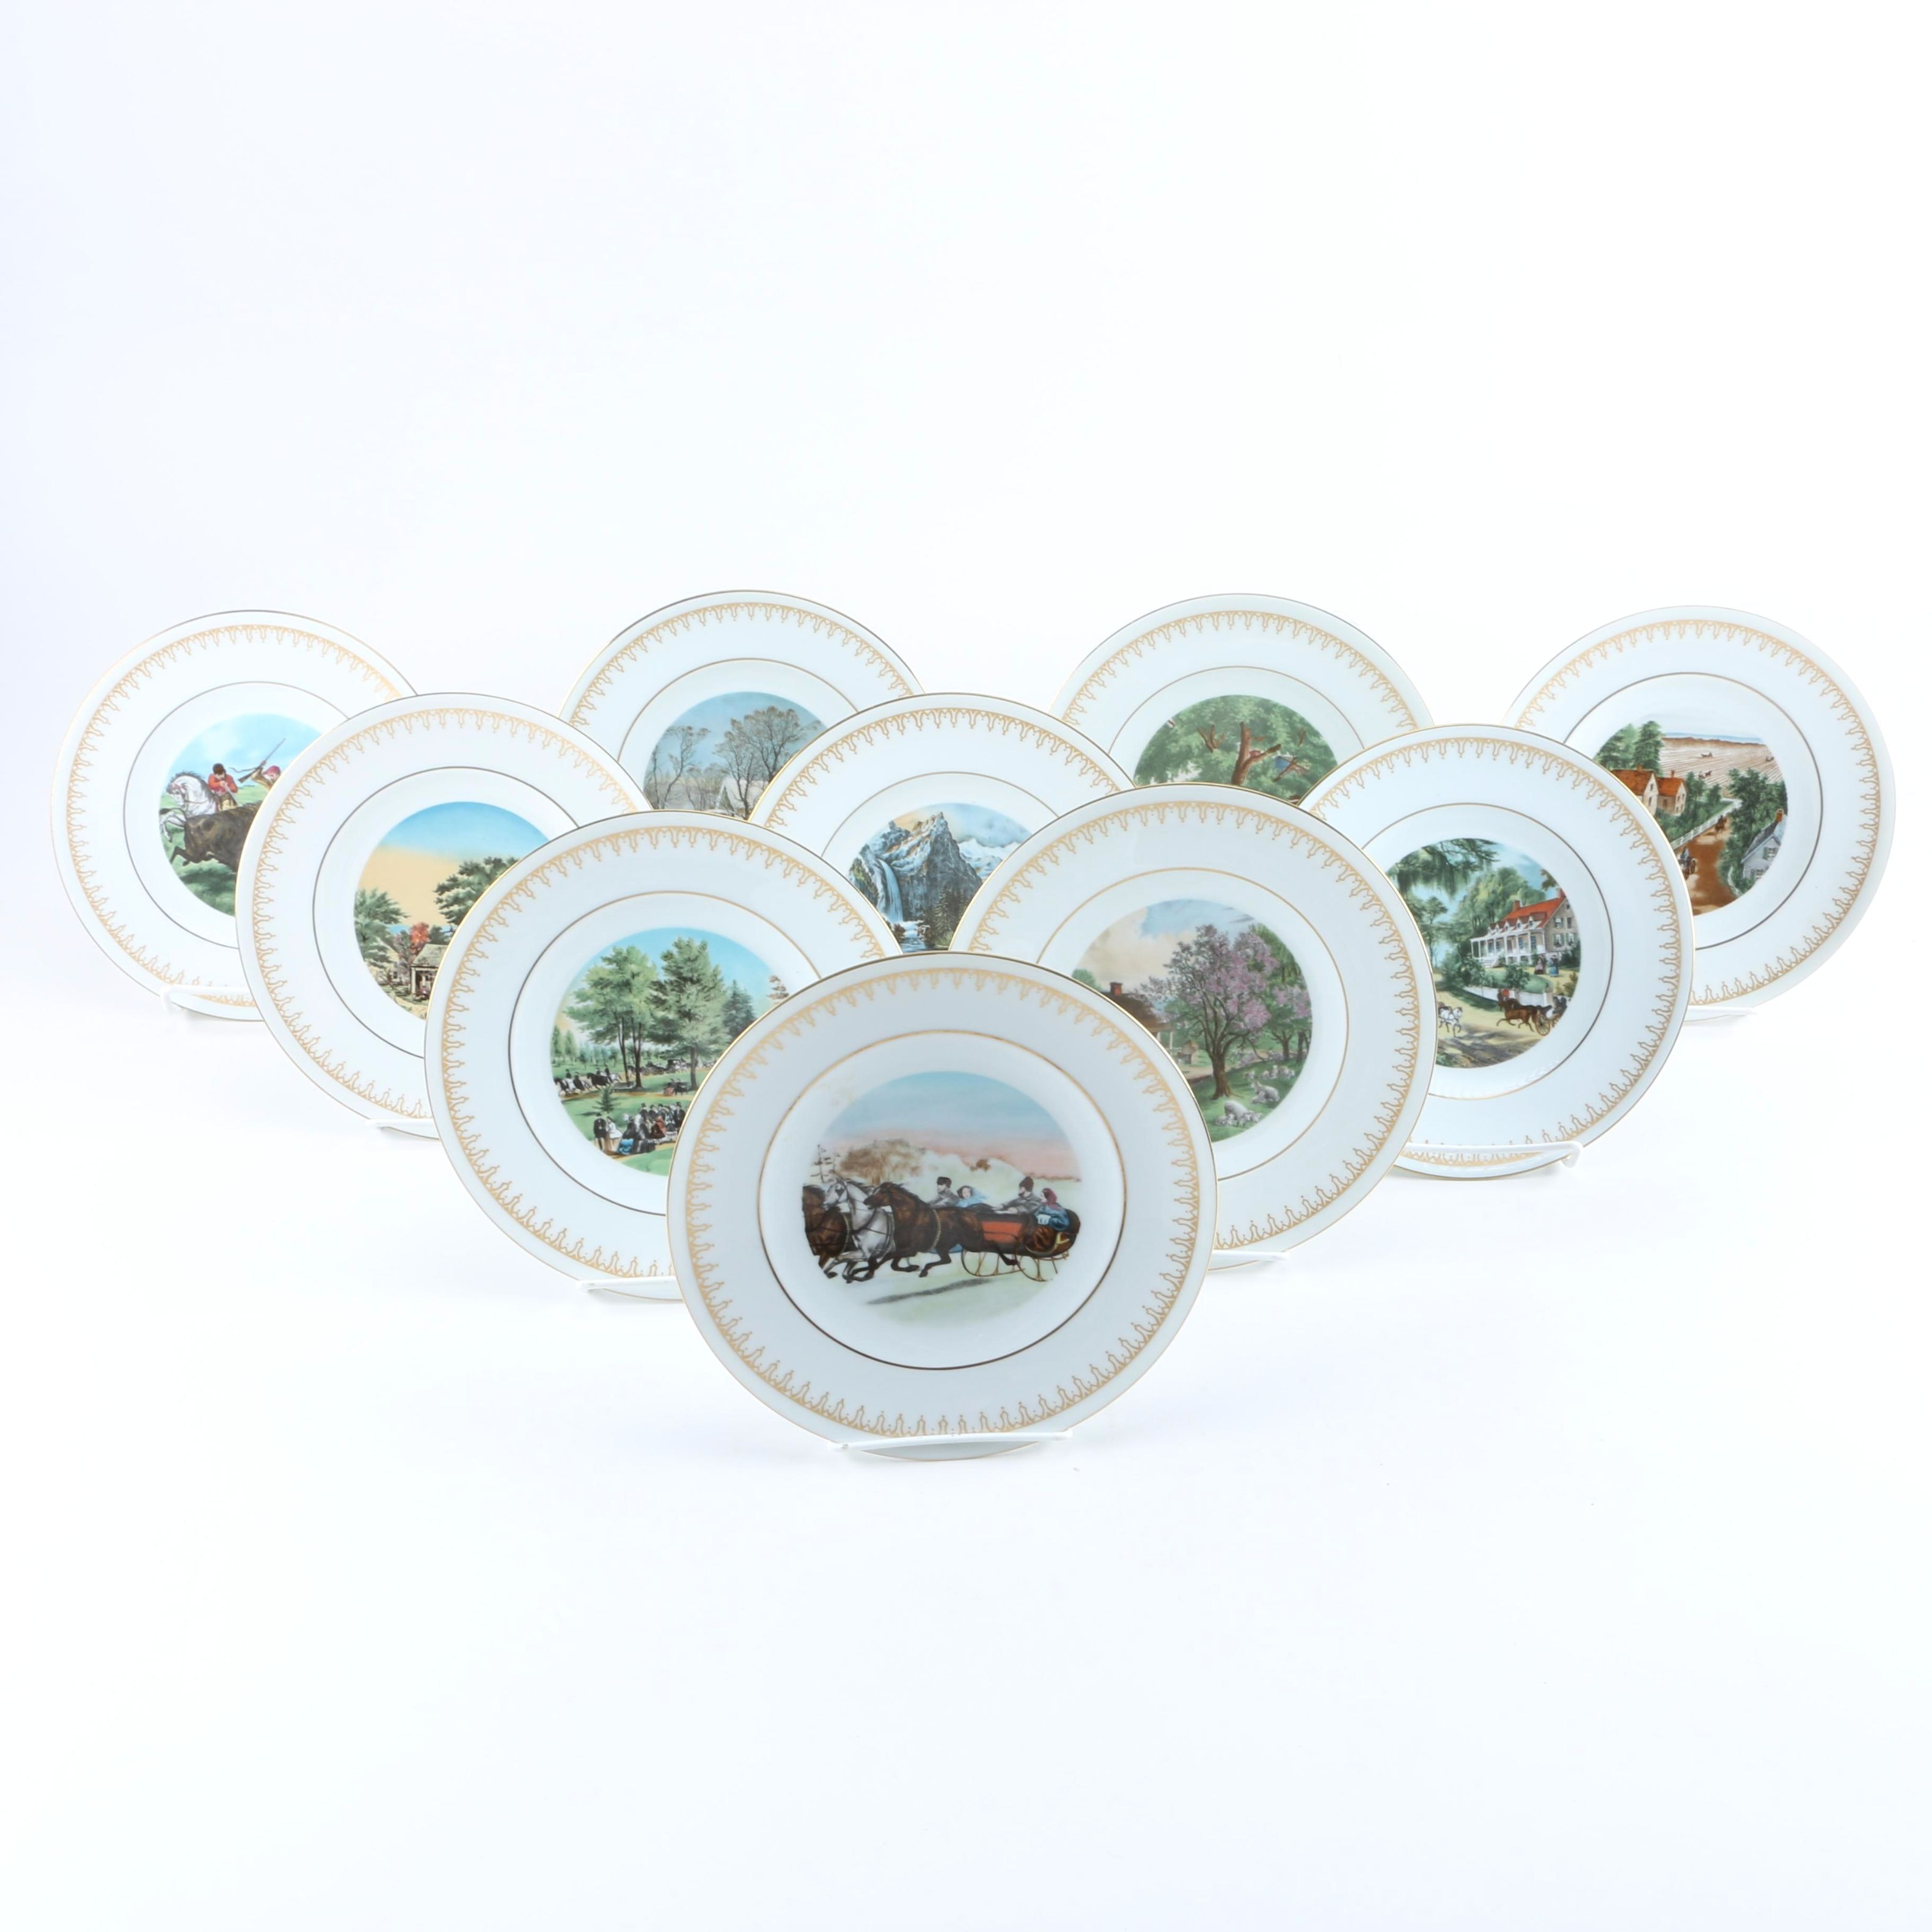 Bing & Grondahl and Currier & Ives Plate Collection for Danbury Mint